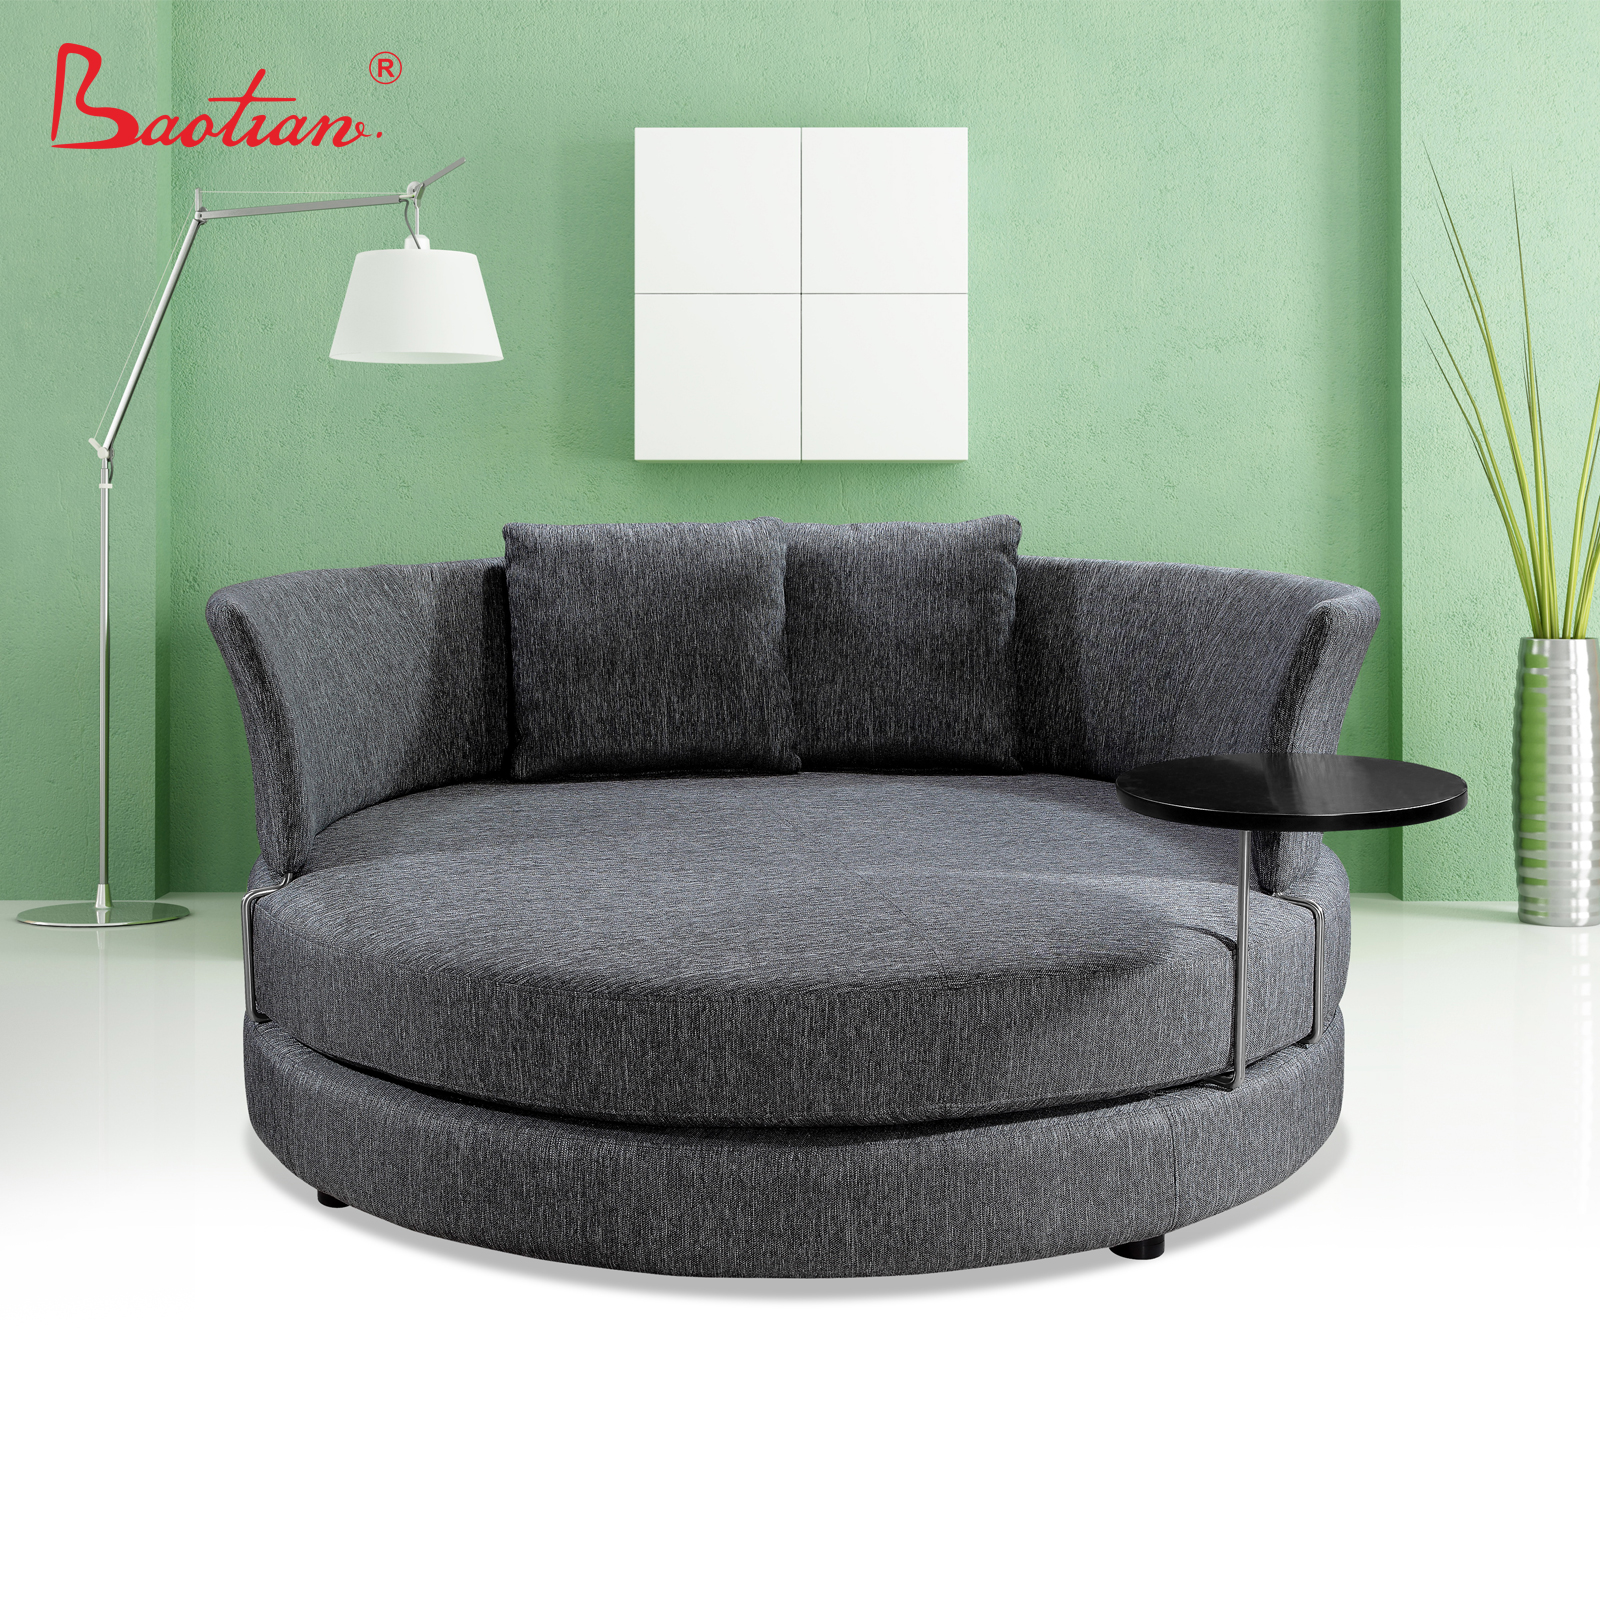 - Red Chaise Lounge Sofa,Round Sofa With Coffee Table - Buy Tv